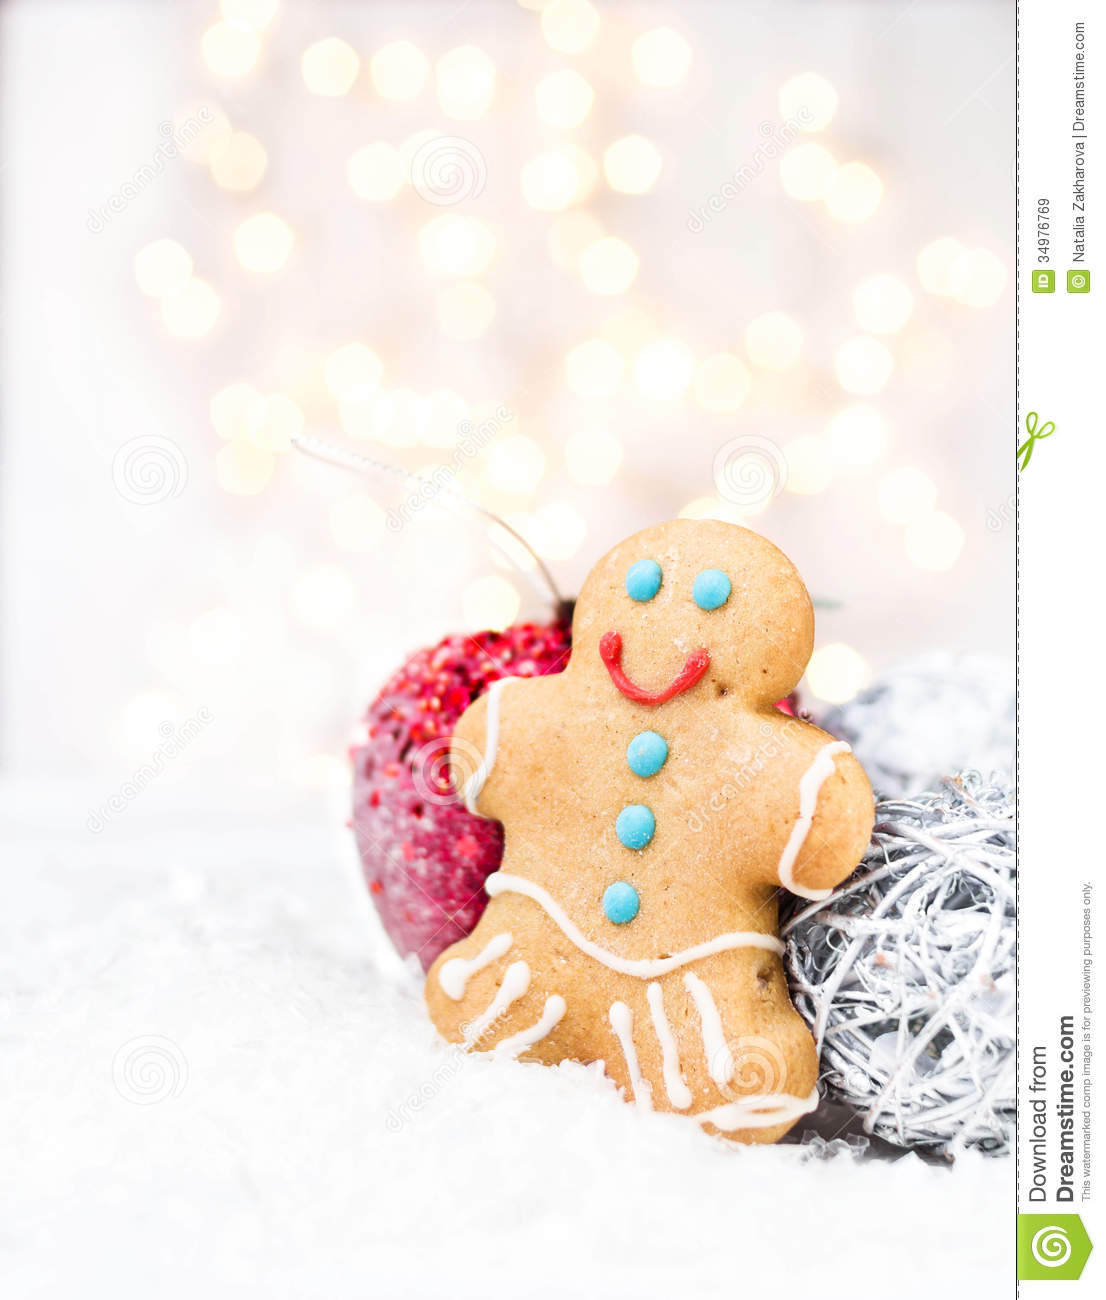 Christmas Card With Gingerbread Man Cookie Festive Decorations